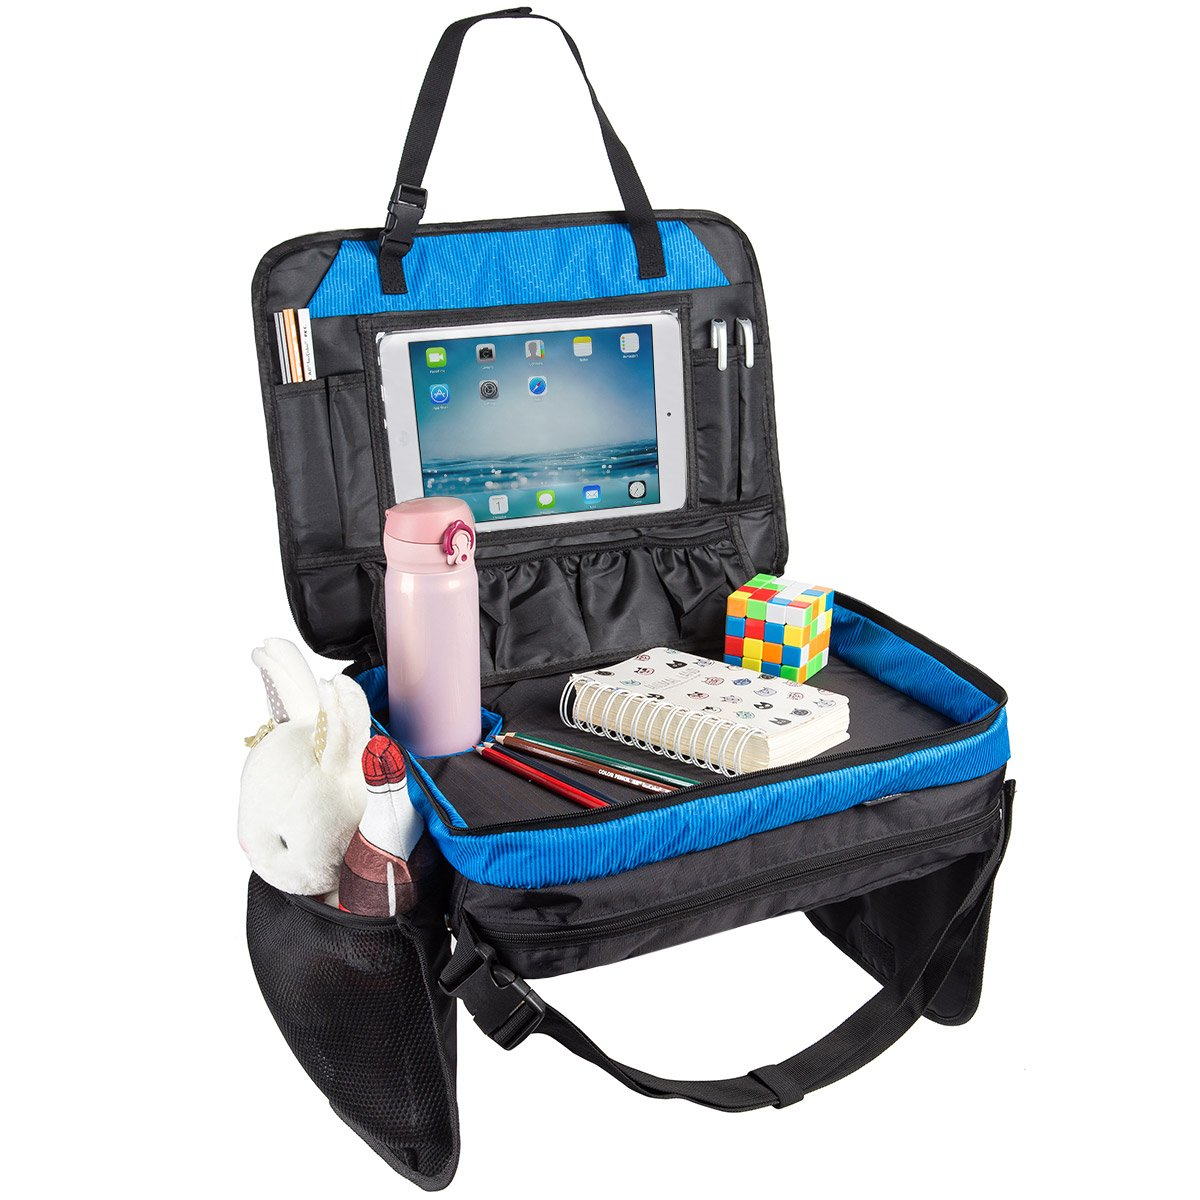 [Upgraded] Kids Travel Tray for Eat and Play Toddlers Backseat Organizer iPad & Tablet Holder 17 inch by 13 inch Large Mesh Side Pockets & Water Bottle Cup Holder